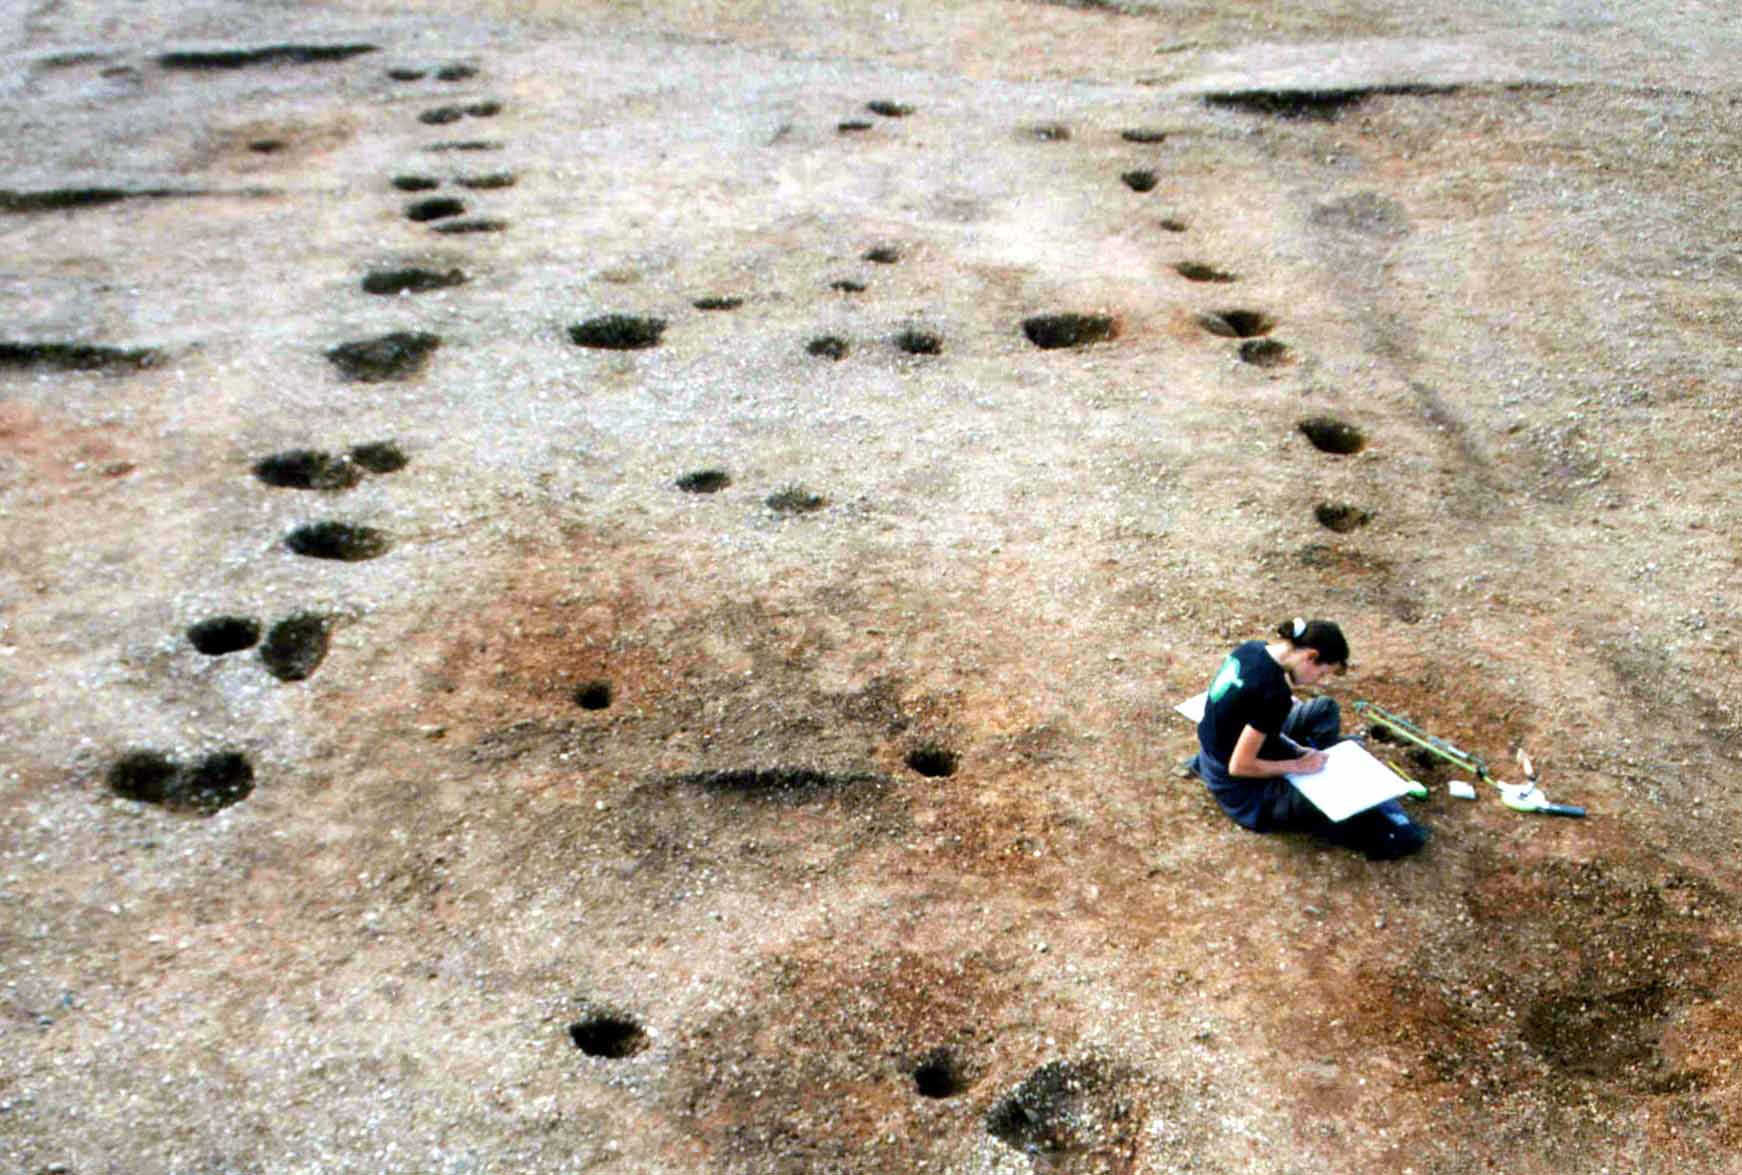 A photograph of a person sitting on a smooth earthen surface, in which a series of regular holes show the outline of a building.